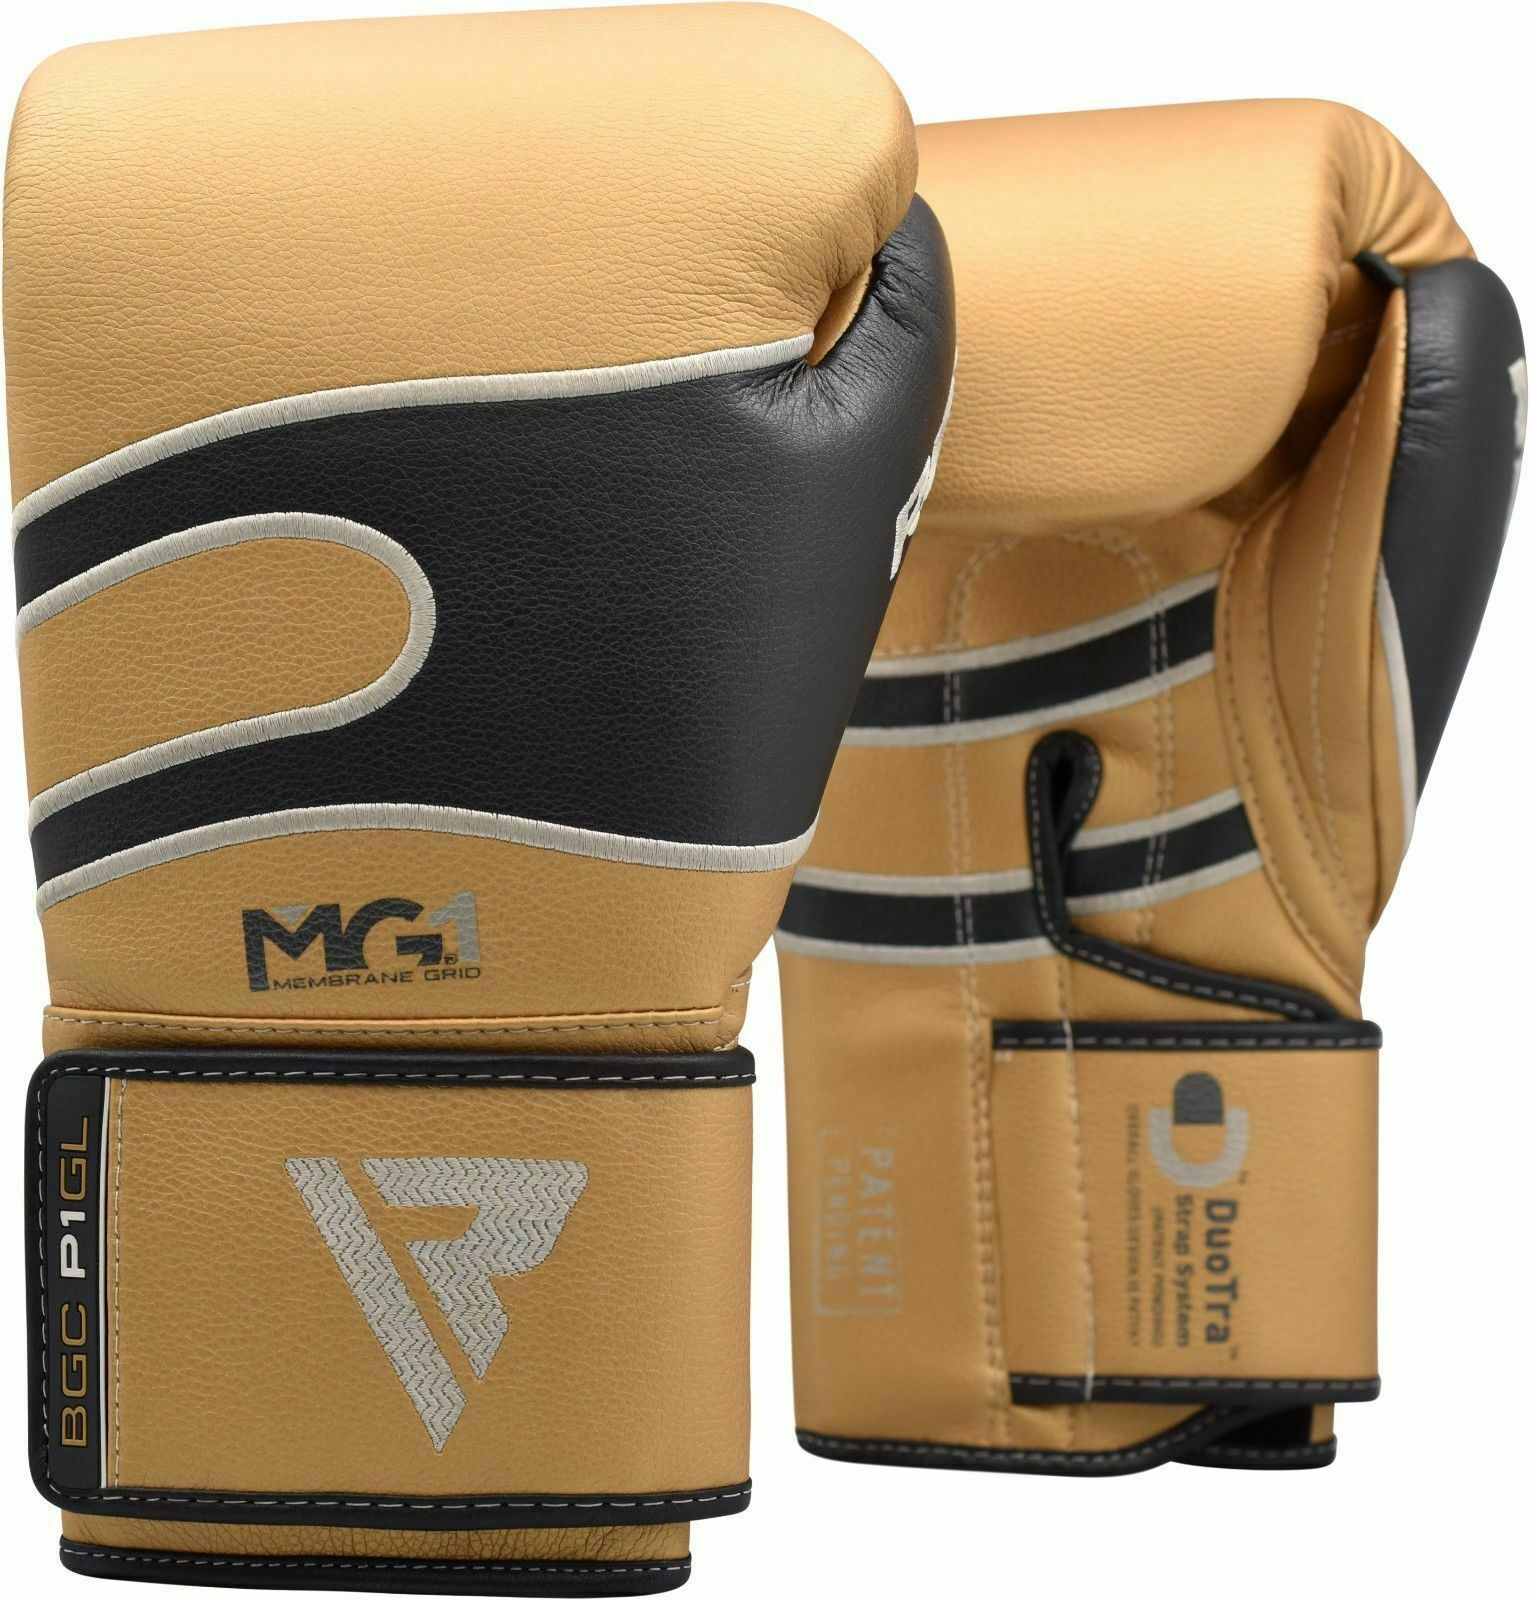 RDX G s Boxing Leather BGC-PIGL   shop makes buying and selling